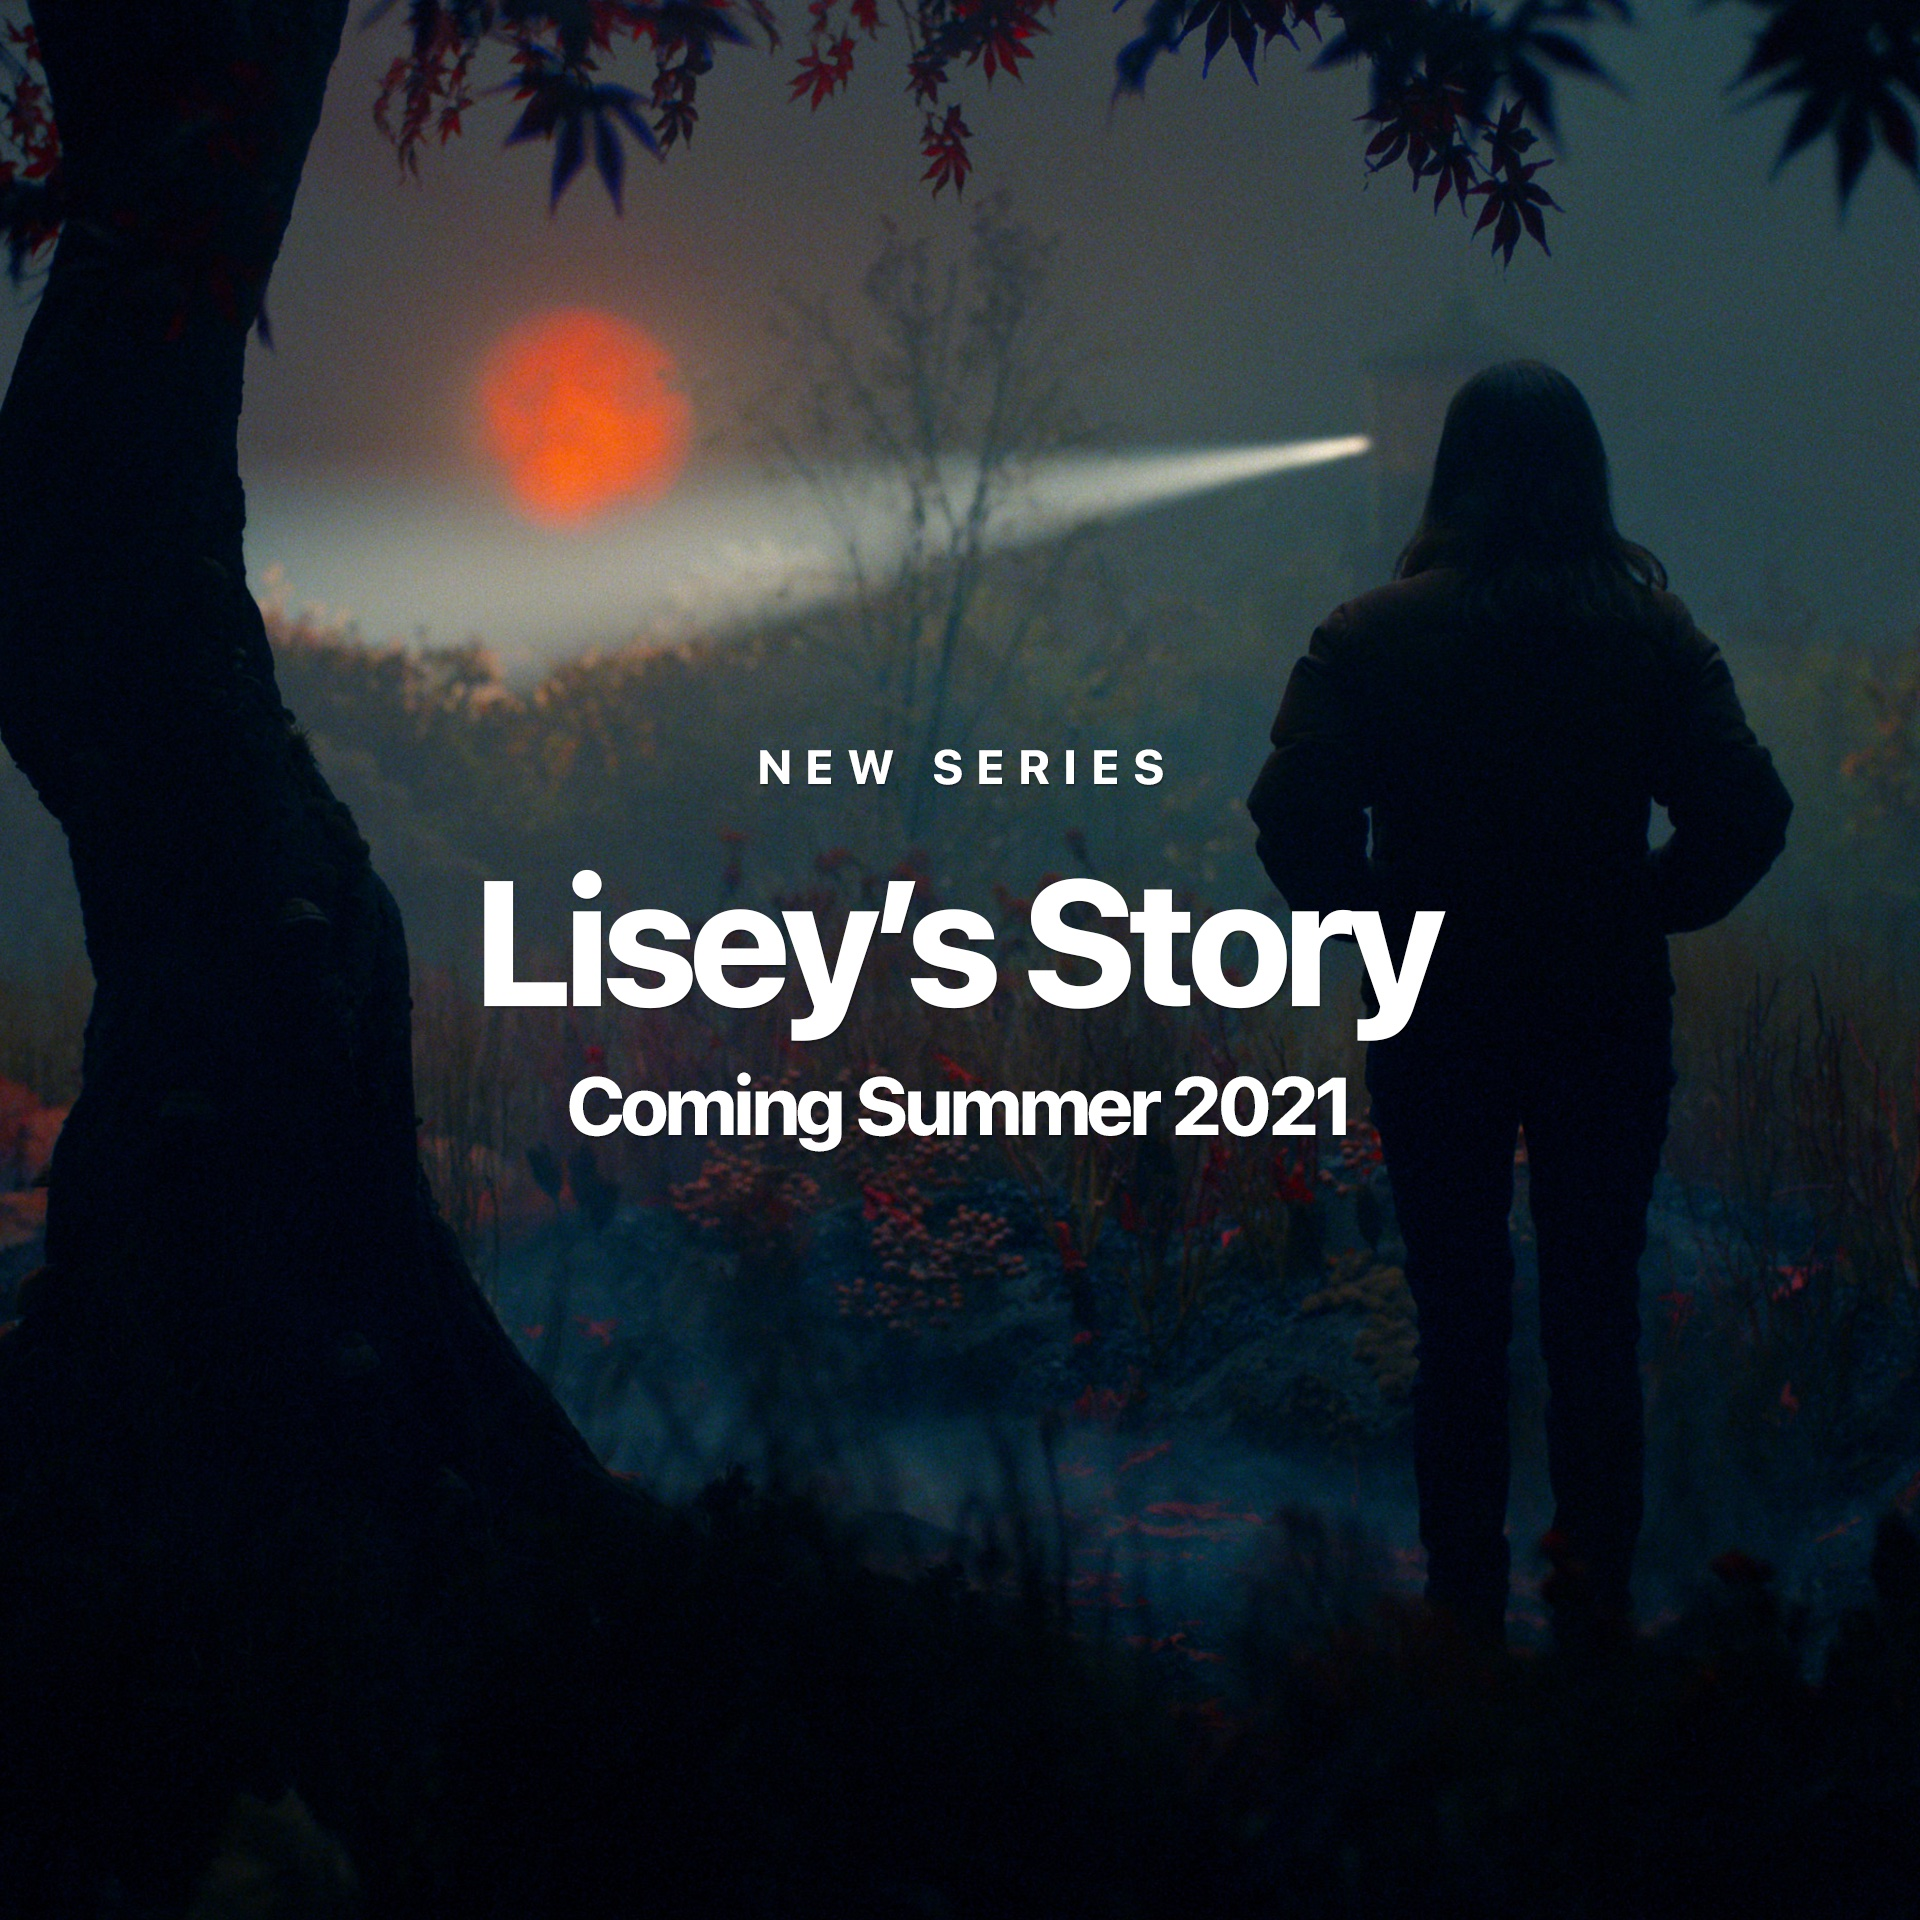 The dark figure of a person walks into the foggy, eerie night with a glowing orange orb in the distance in a still pulled from the Apple Original series, Lisey's Story.